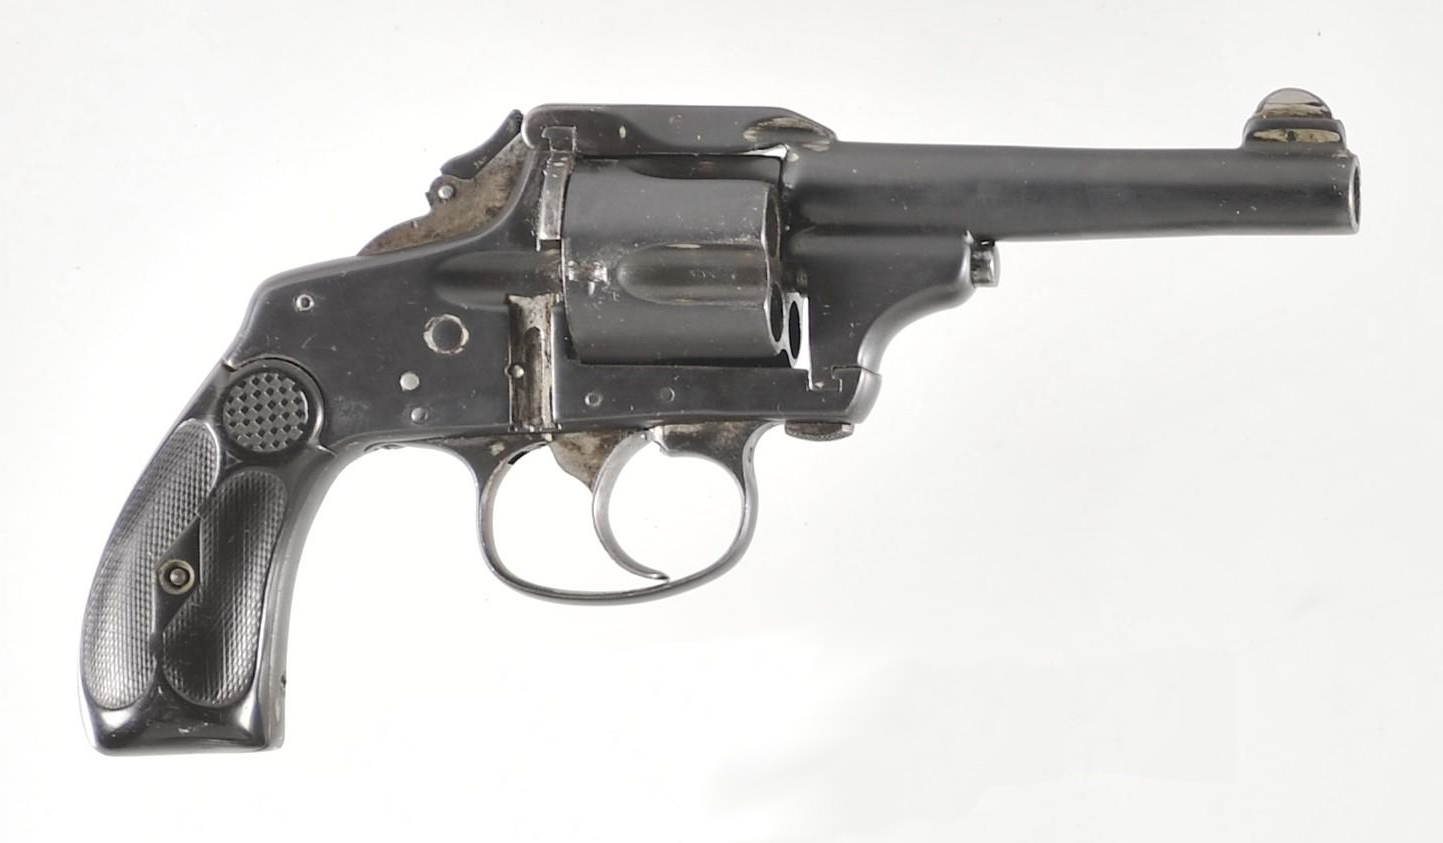 Merwin Hulbert revolver coming up for sale by Rock Island Auction. Note that loading gate appears to be missing. (Picture courtesy Rock Island Auction).